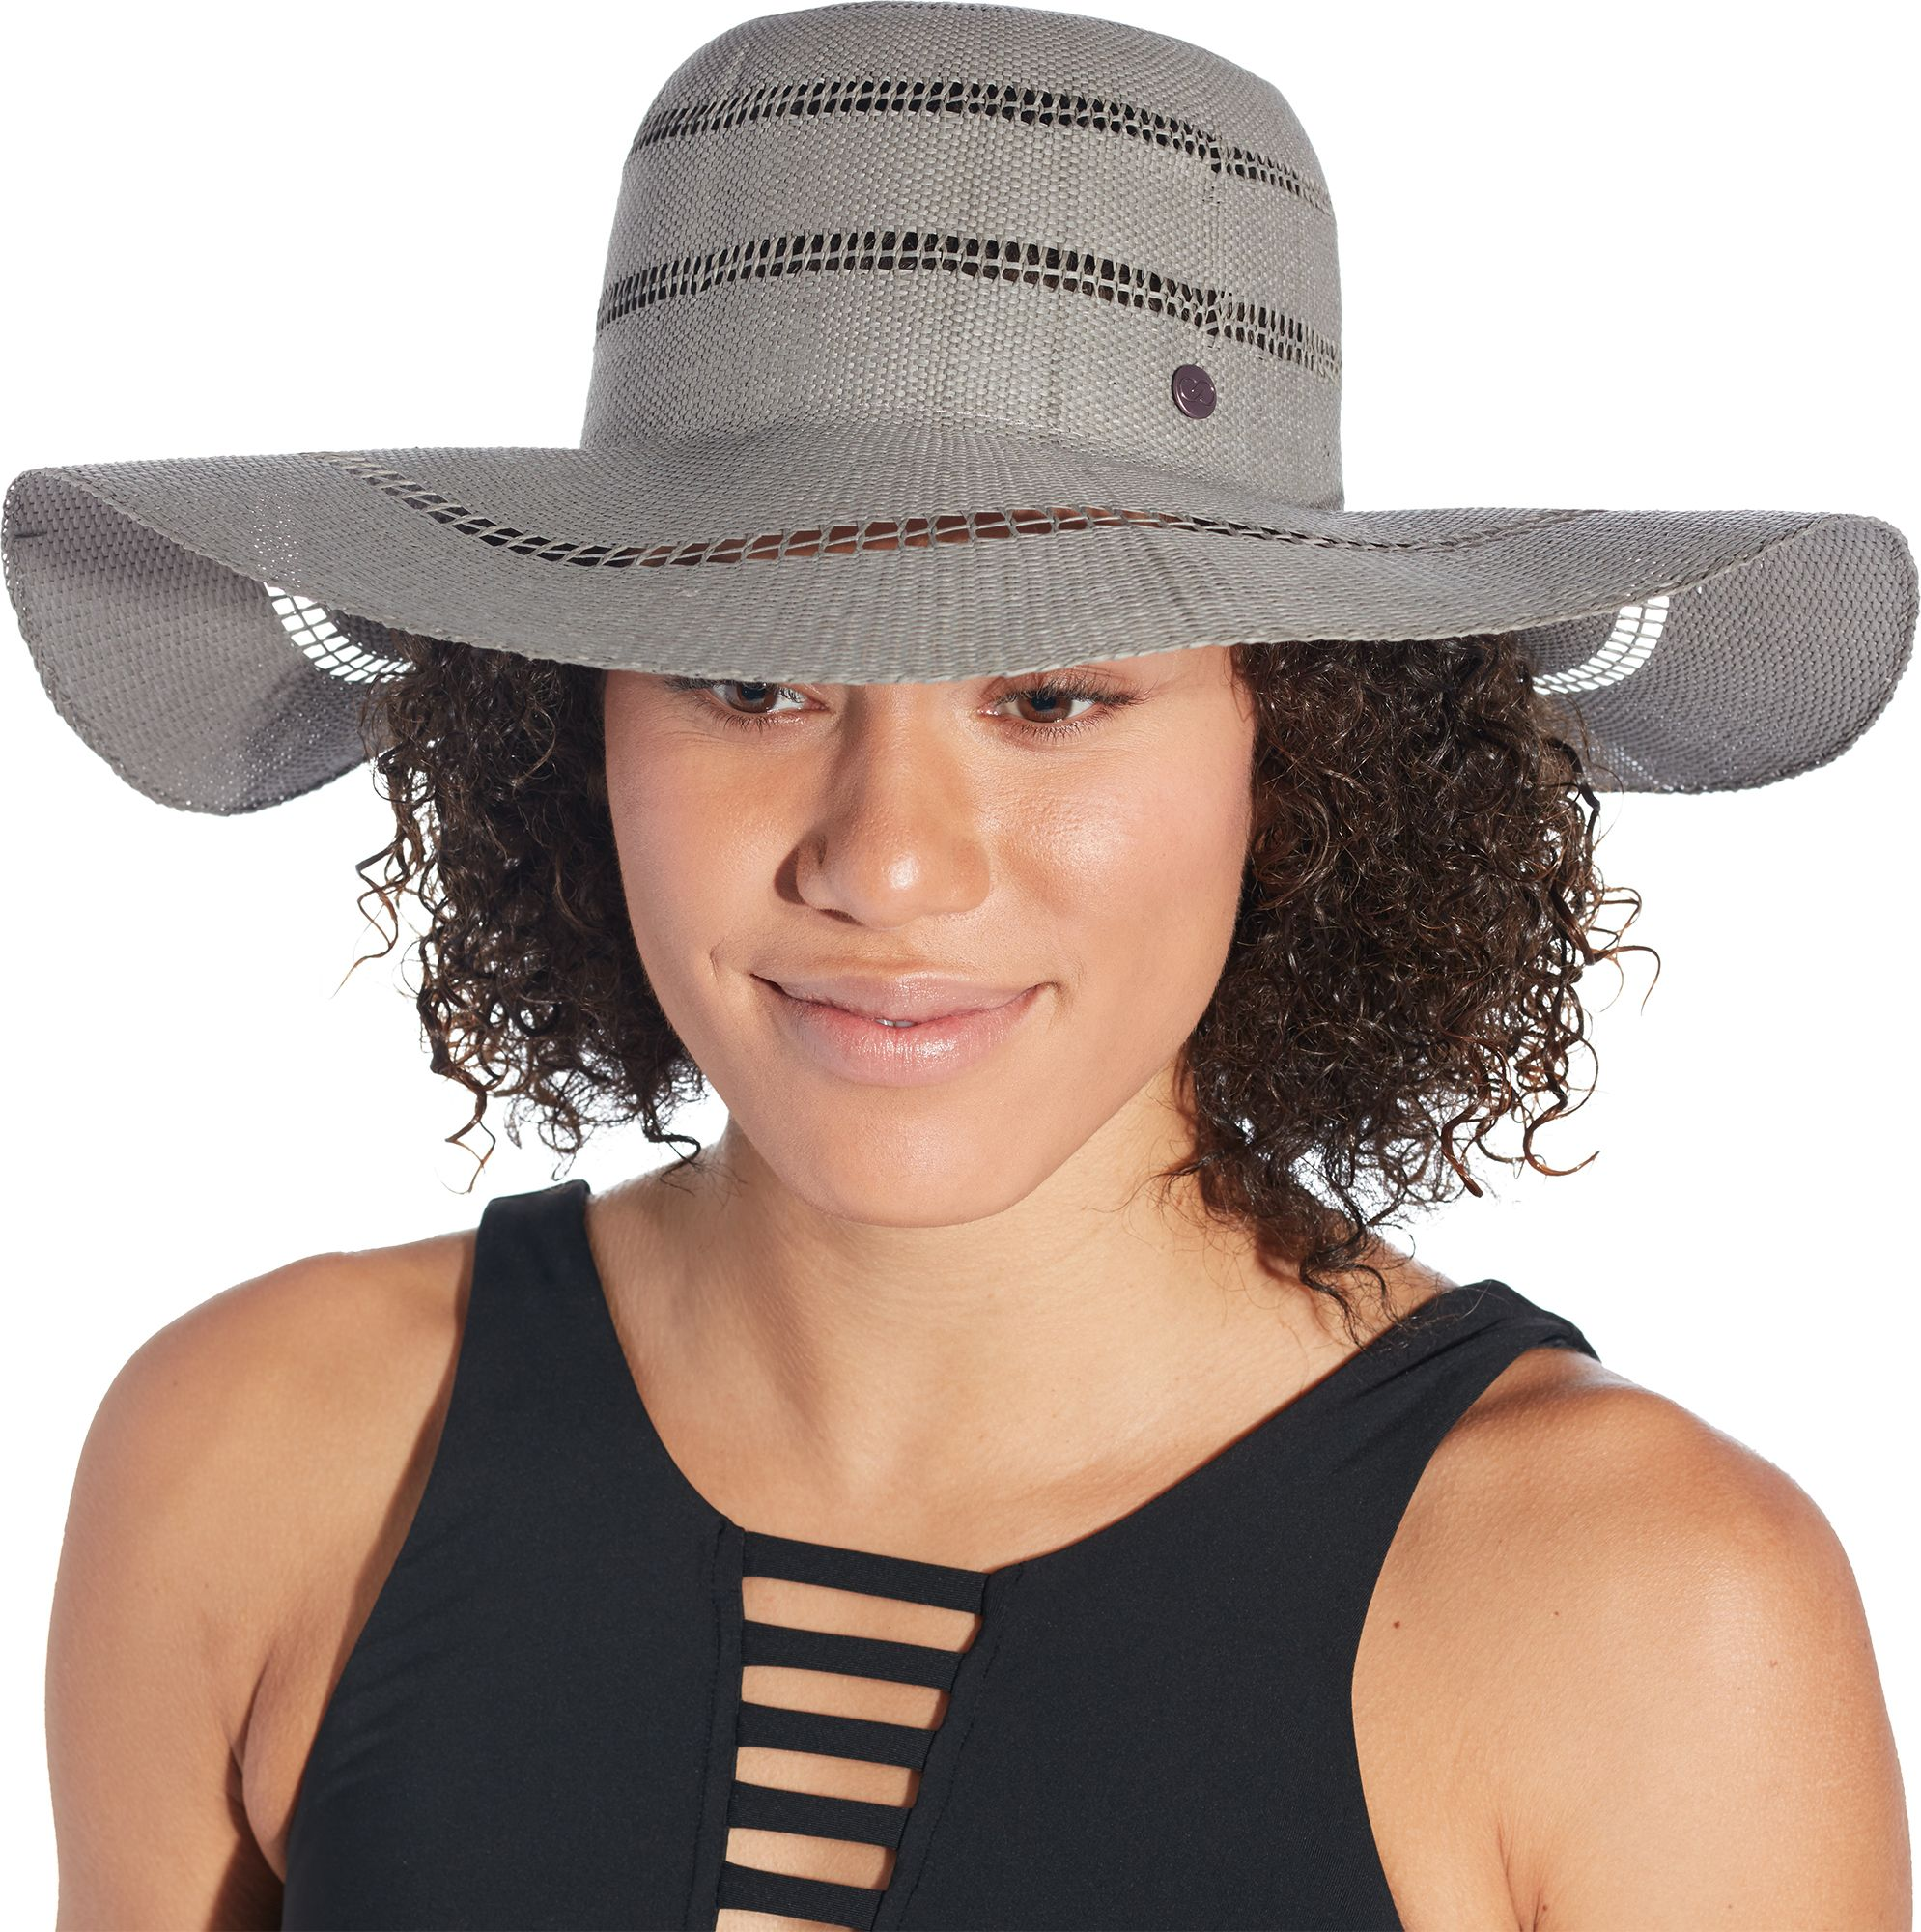 05a50650c894f3 CALIA by Carrie Underwood Women's Floppy Cutouts Hat | Fitness Apparel for  Your Life.Proposition 65 warning iconProposition 65 warning icon